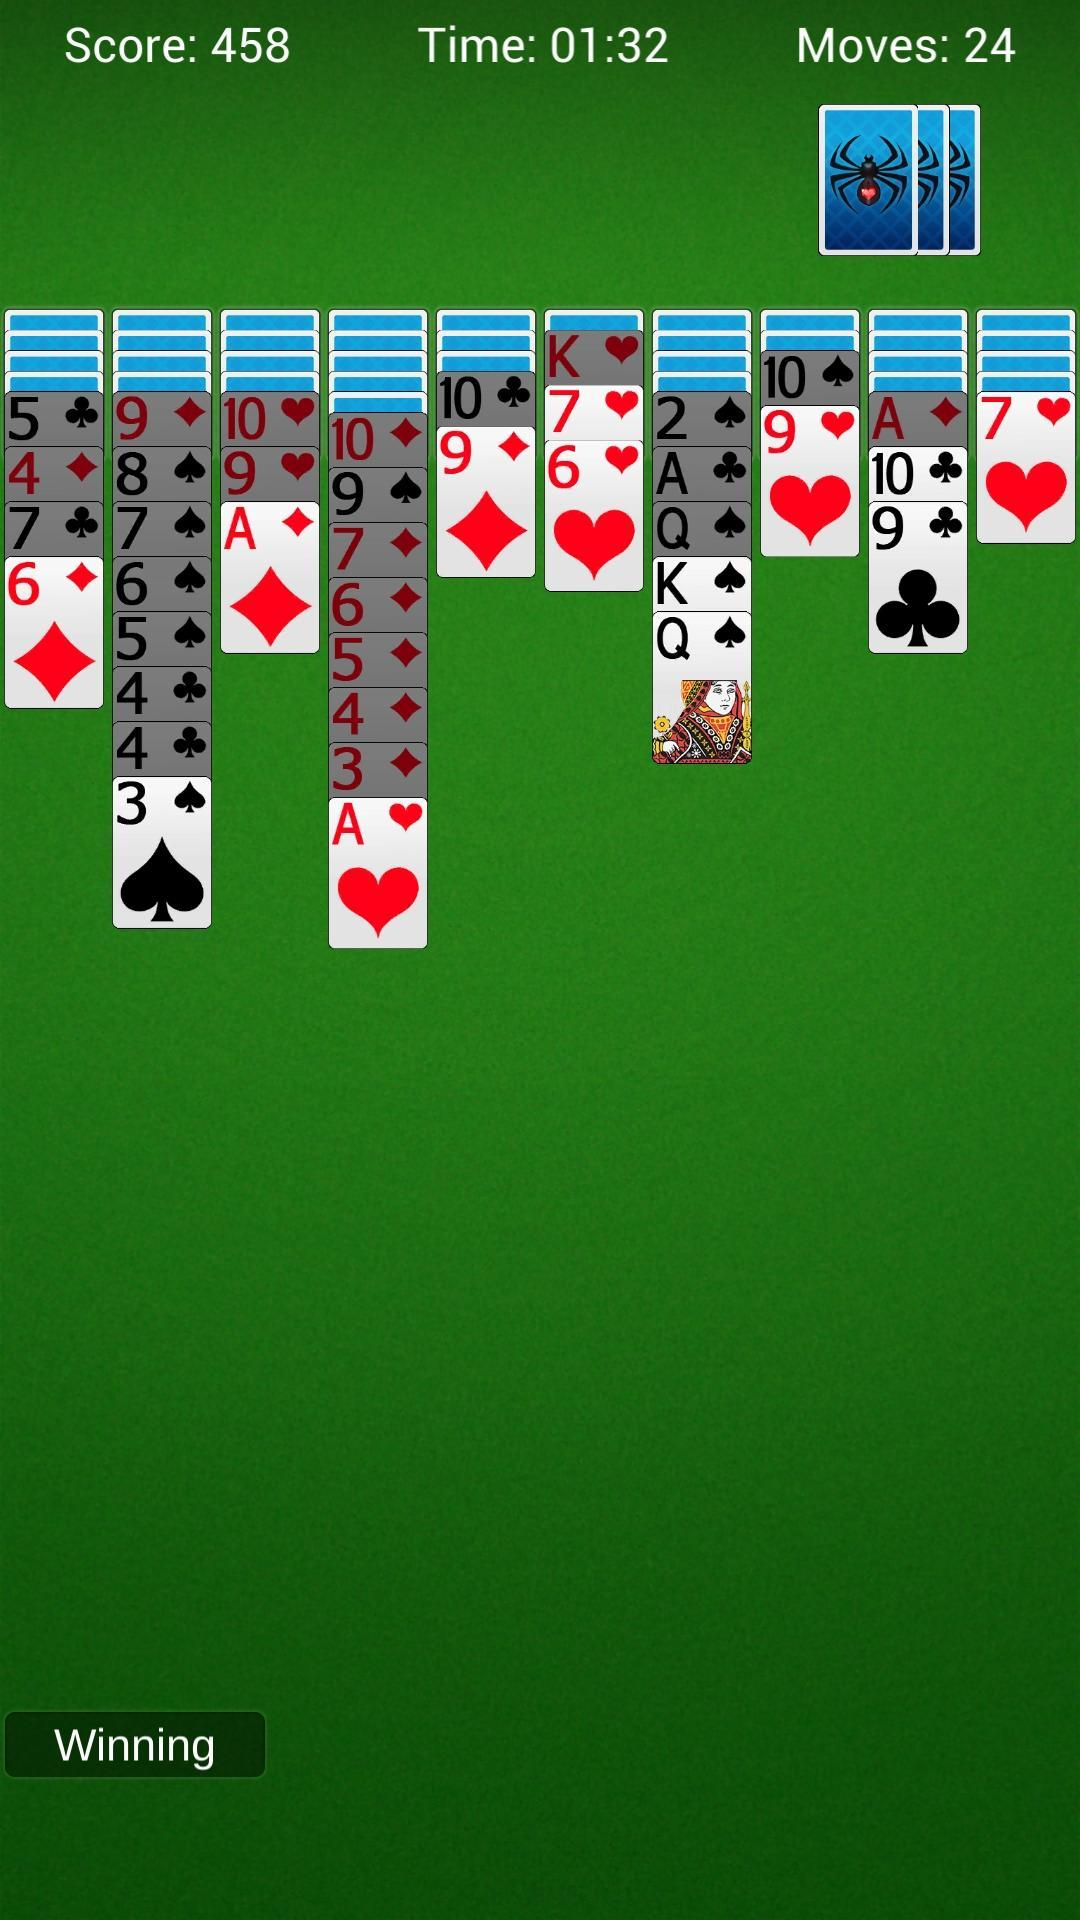 Spider Solitaire - Best Classic Card Games 1.8.0.20210225 Screenshot 3